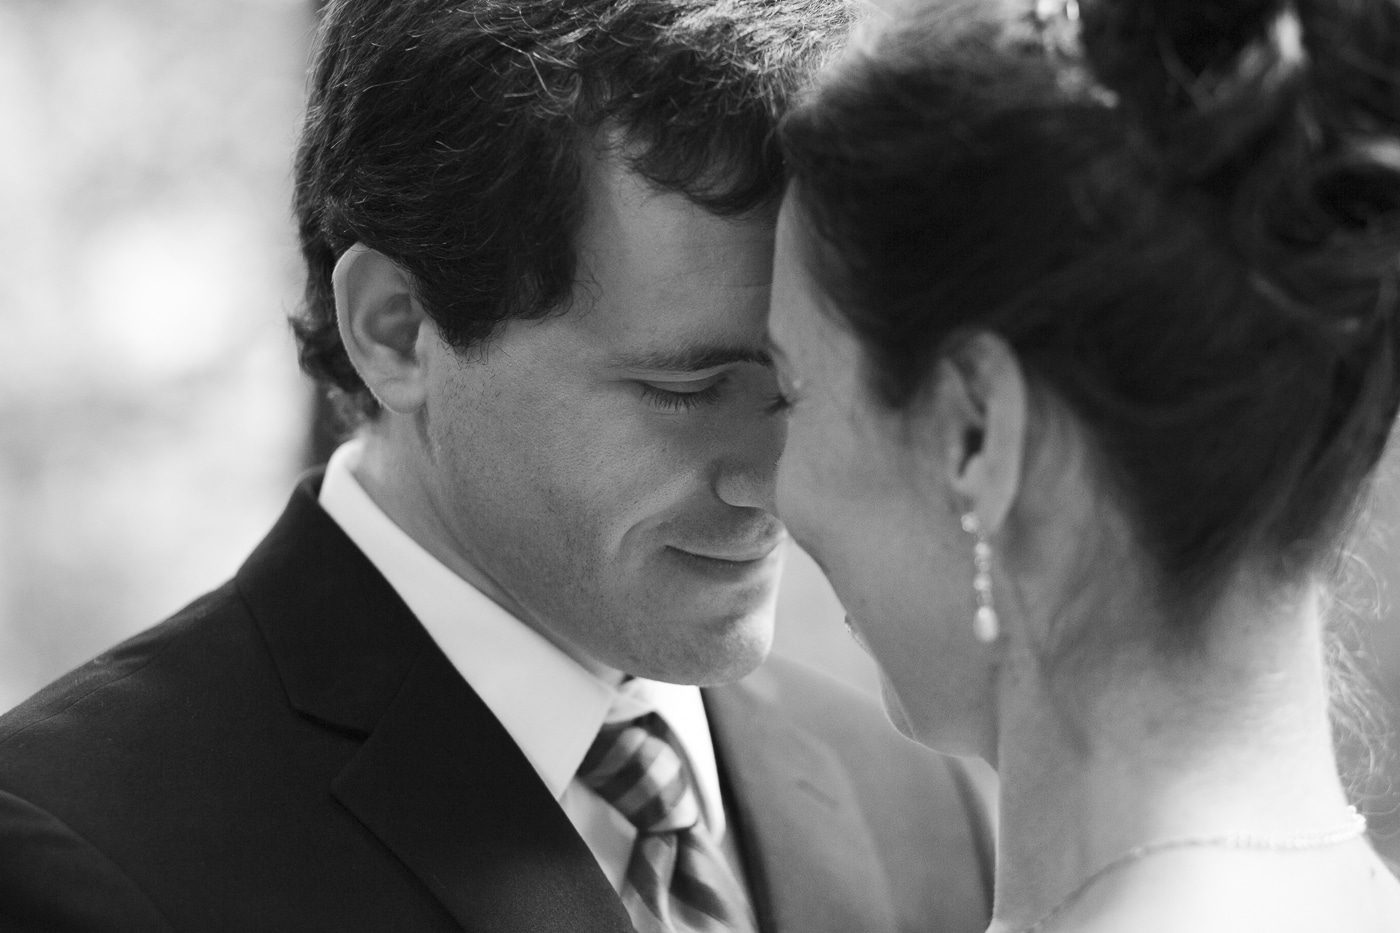 Bride and groom taking a moment together by Joshua Wyborn Photographic